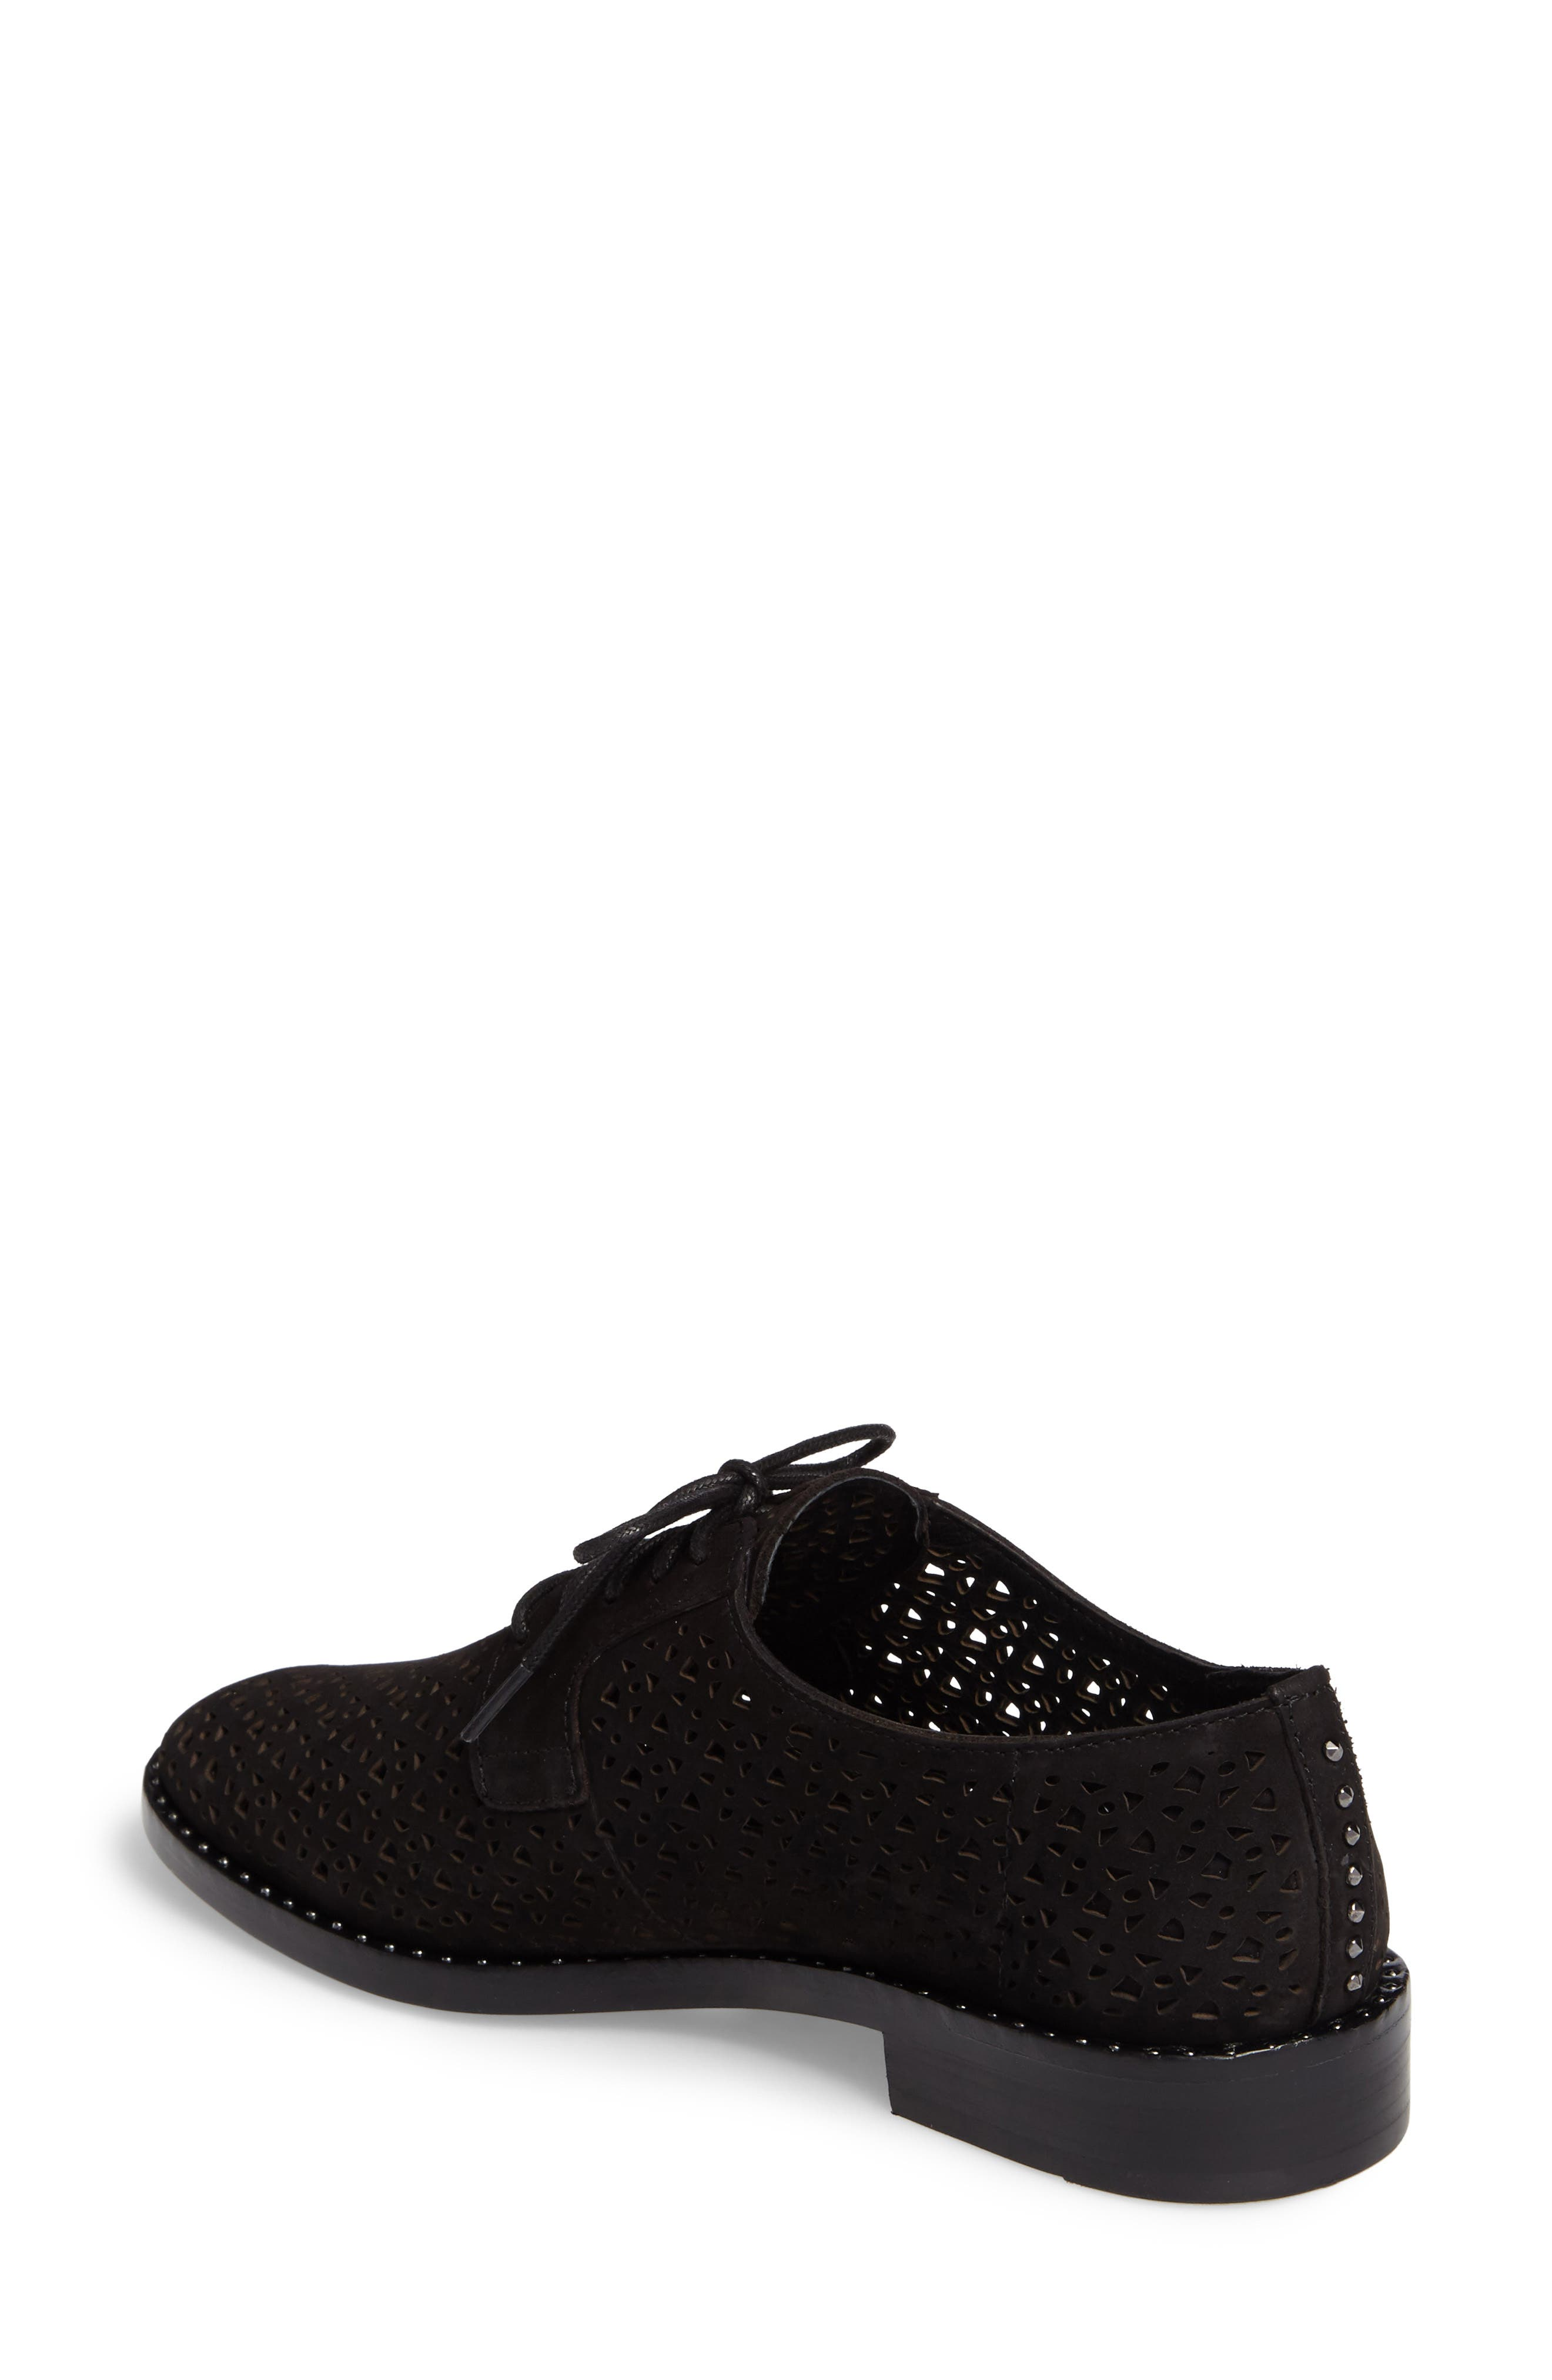 Lesta Geo Perforated Oxford,                             Alternate thumbnail 2, color,                             001